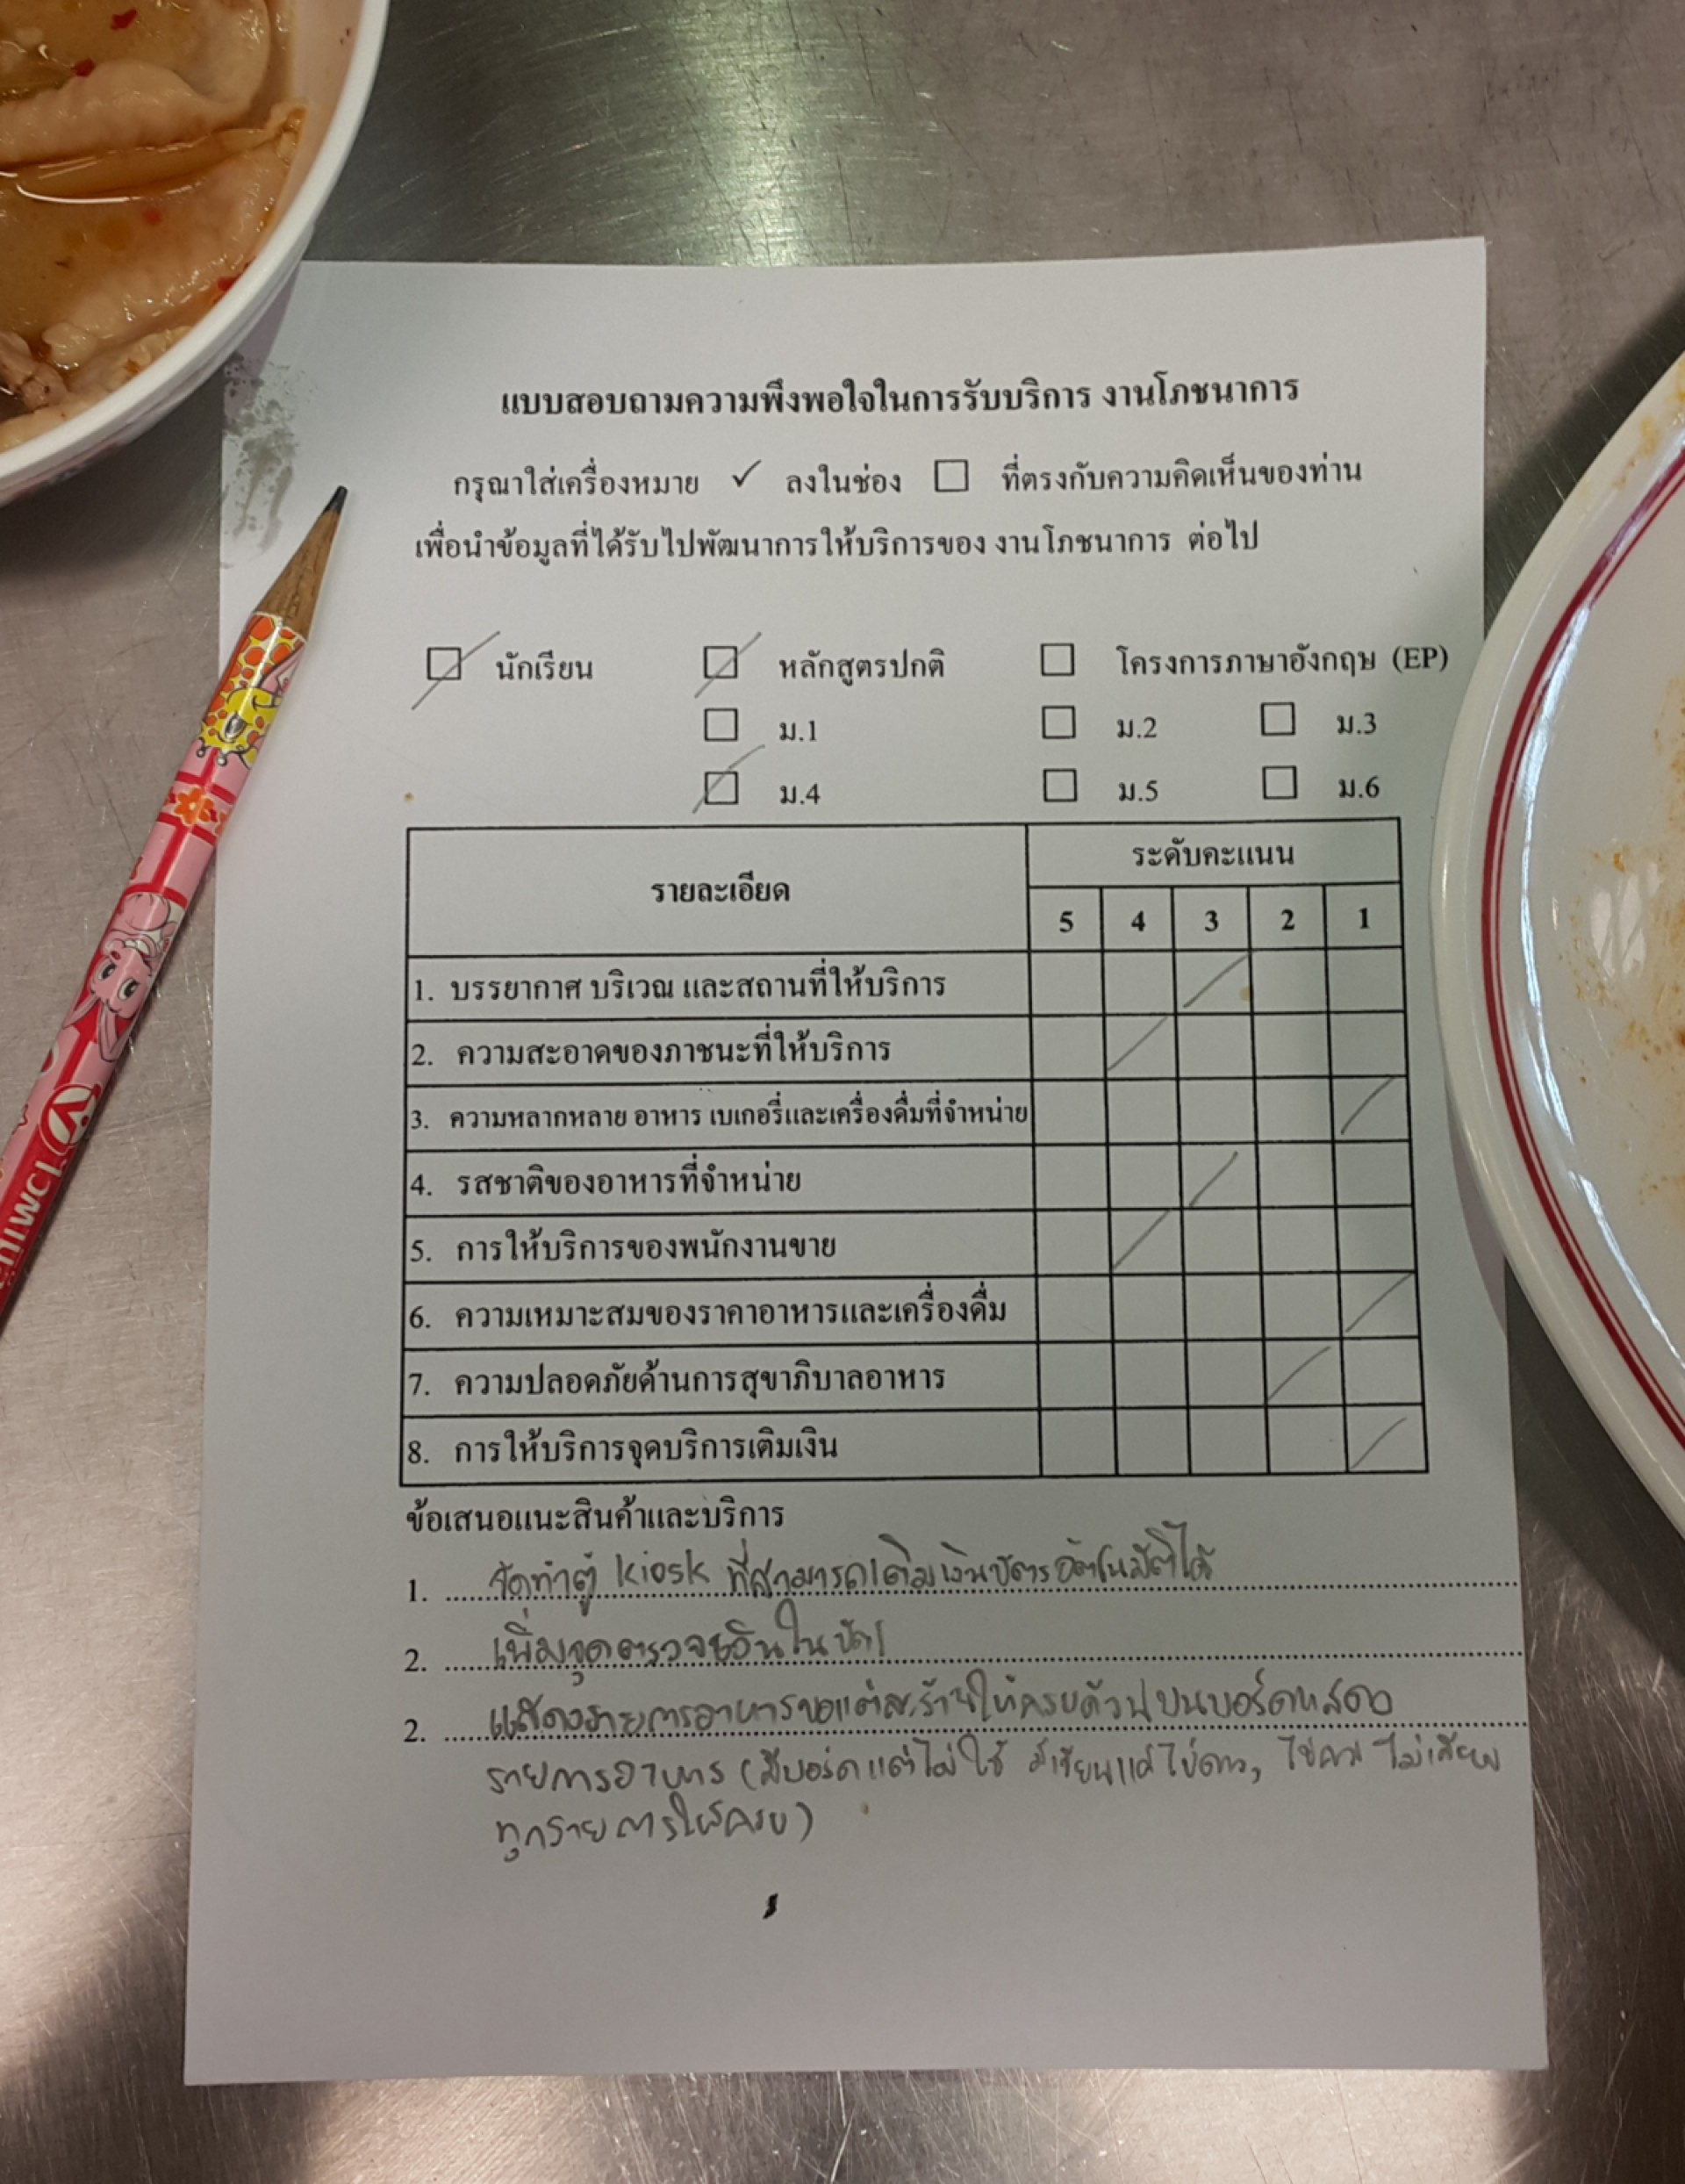 016 Research Paper 1200px Questionaire In Thai Market Questionnaire Sample Questions Striking Pdf 1920